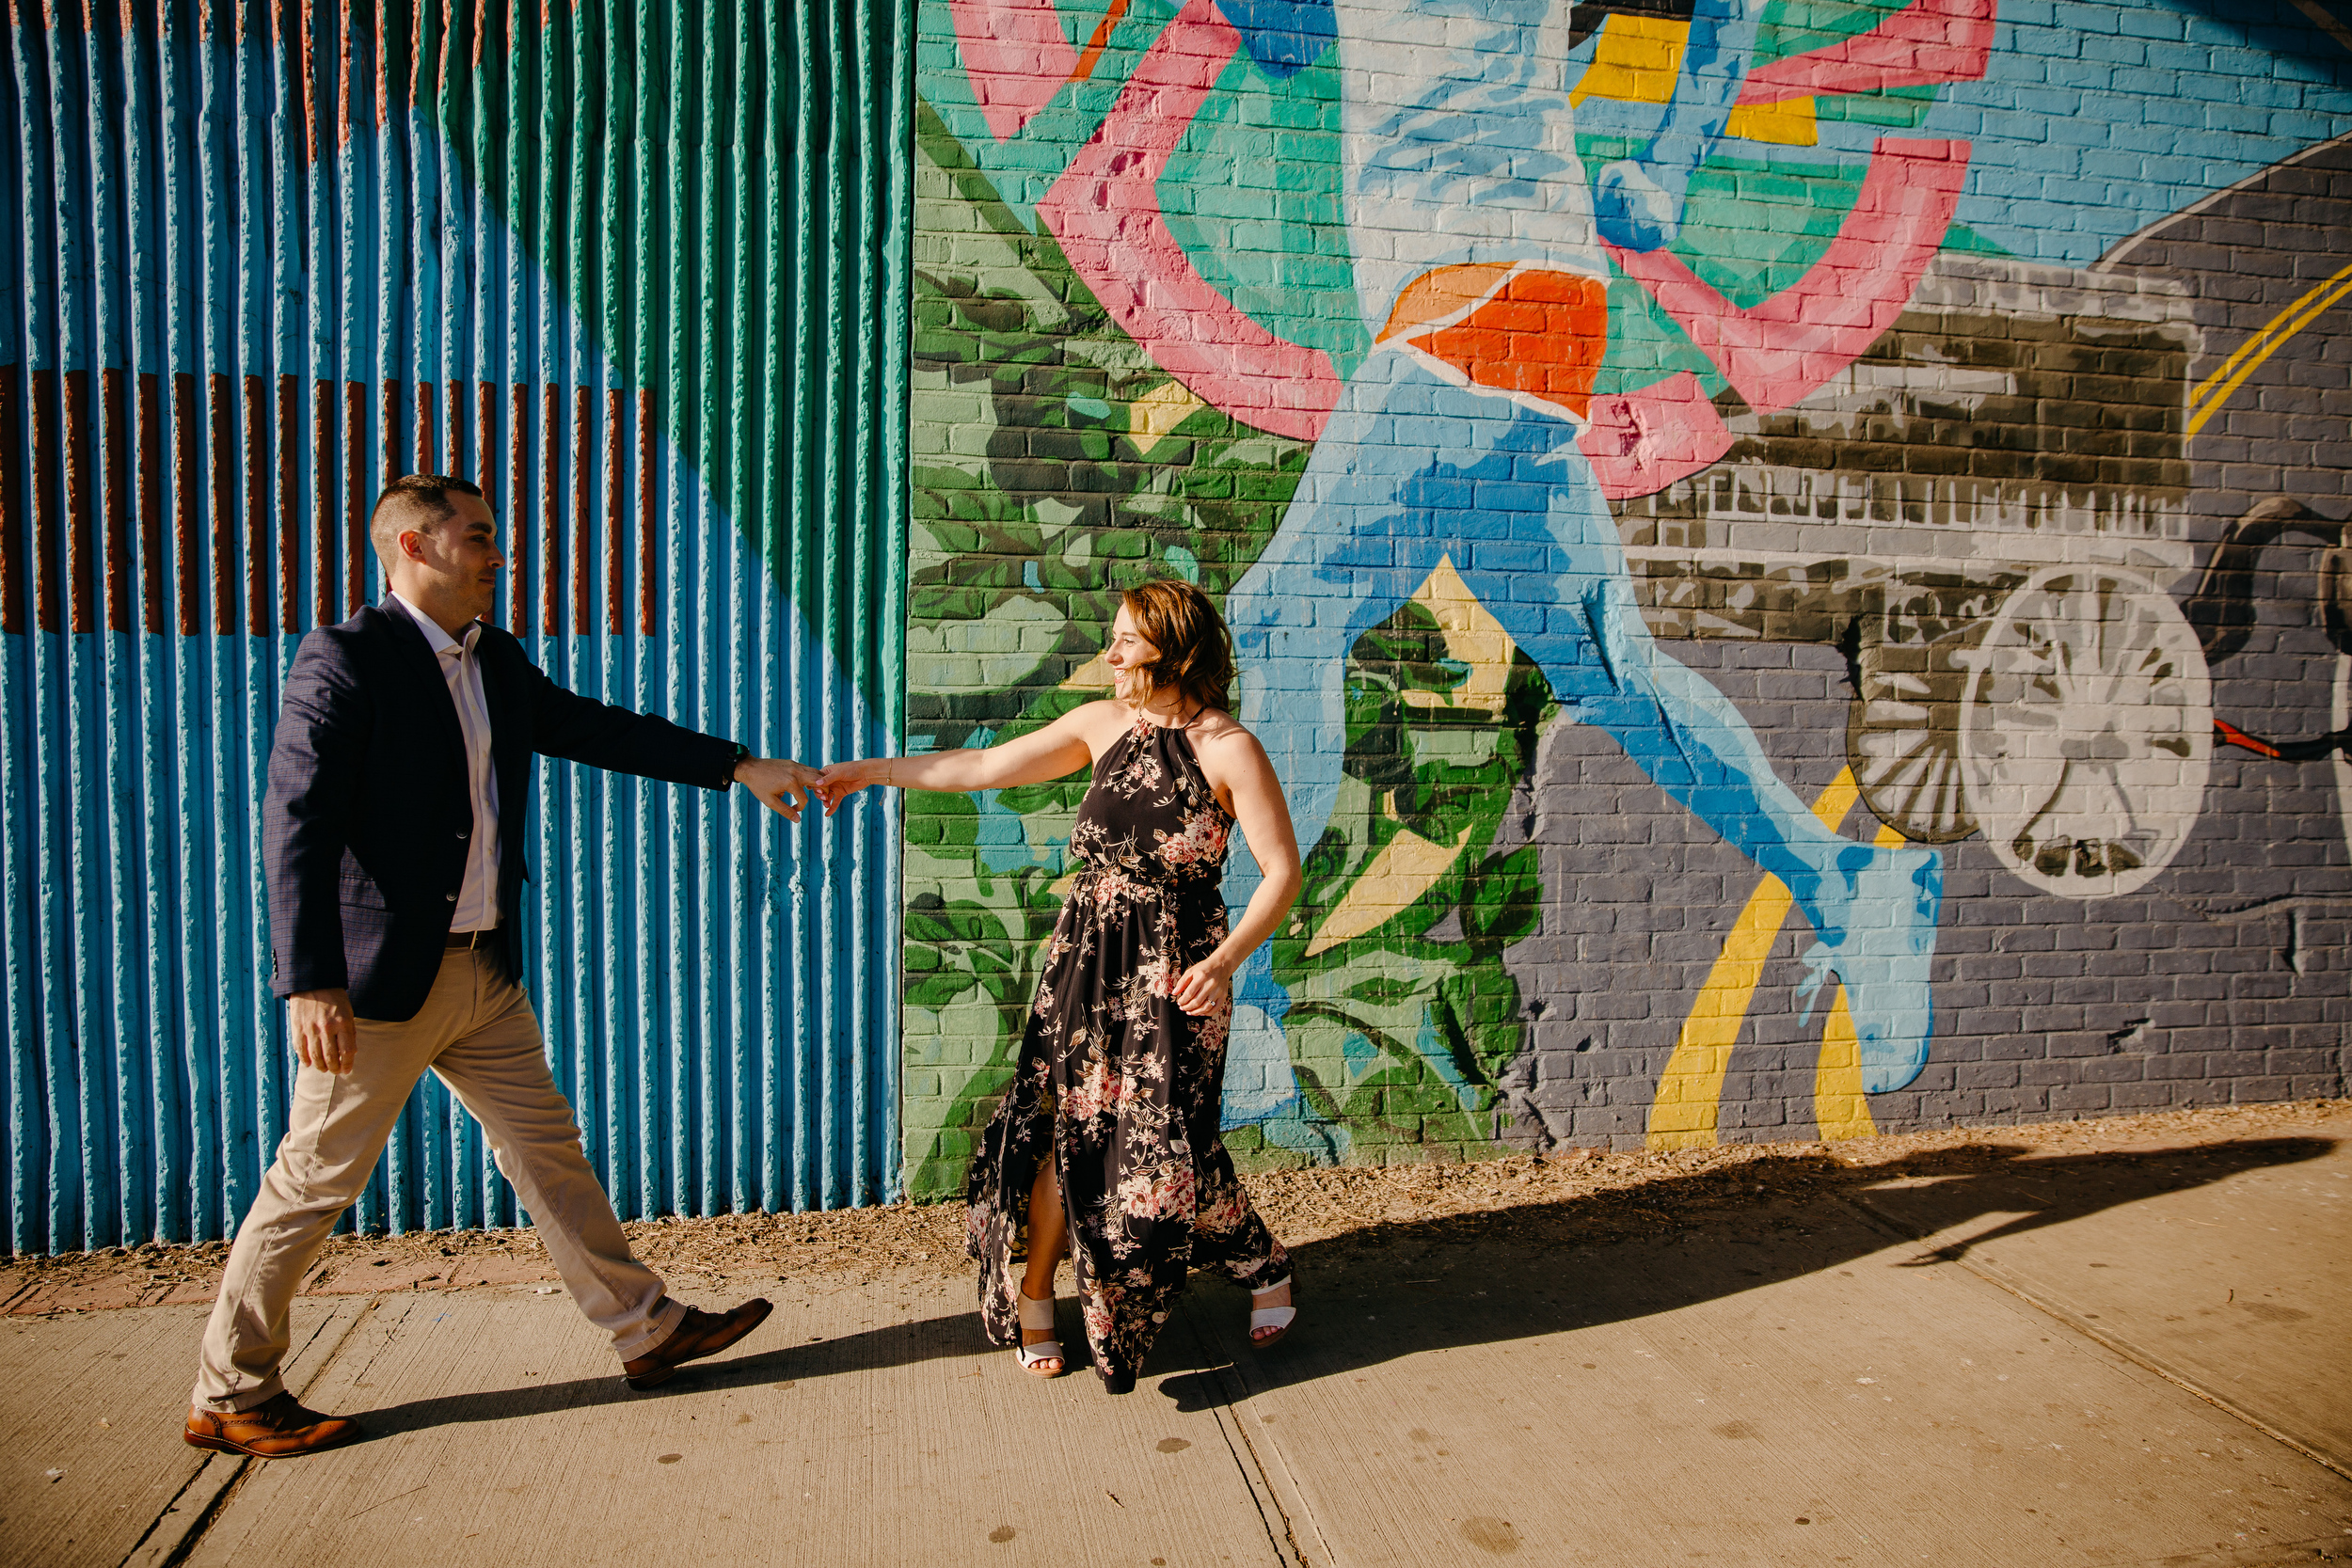 fun dumbo brooklyn engagement photos with colorful graffiti walls